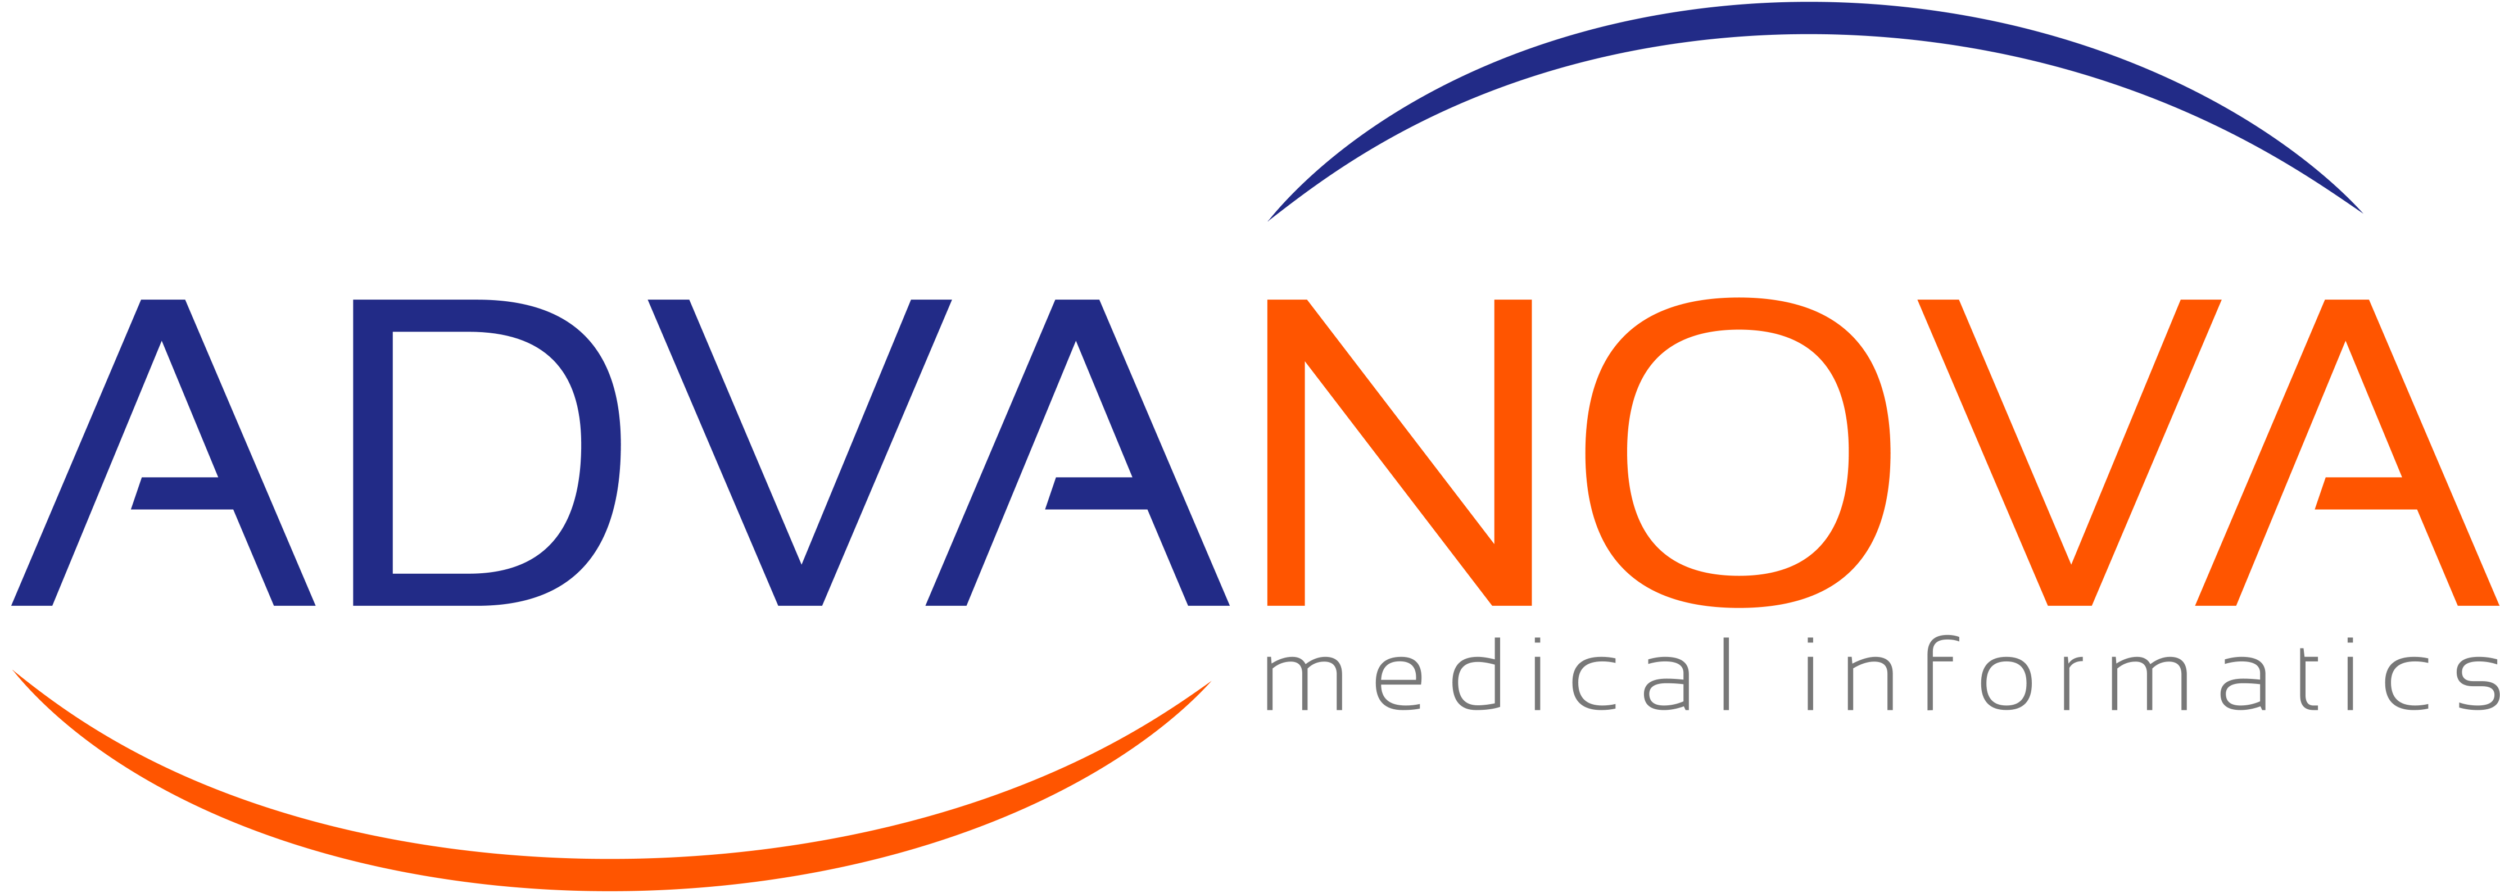 Logo digital Health Startup Advanova - HTGF Start-up VC Finanzierung